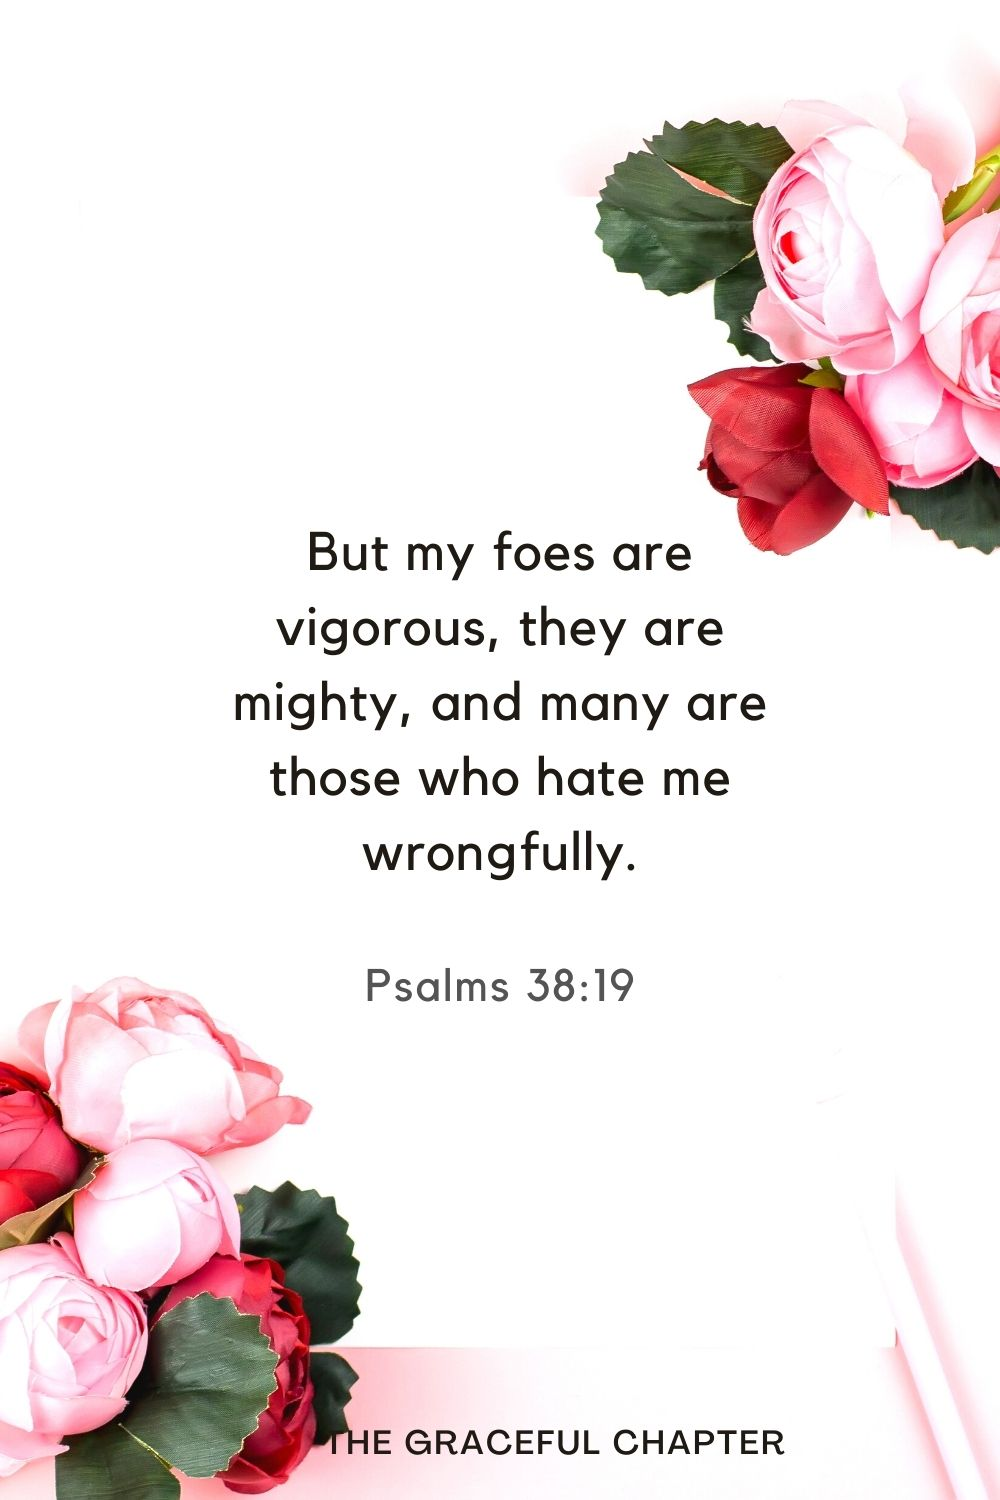 But my foes are vigorous, they are mighty, and many are those who hate me wrongfully. Psalms 38:19